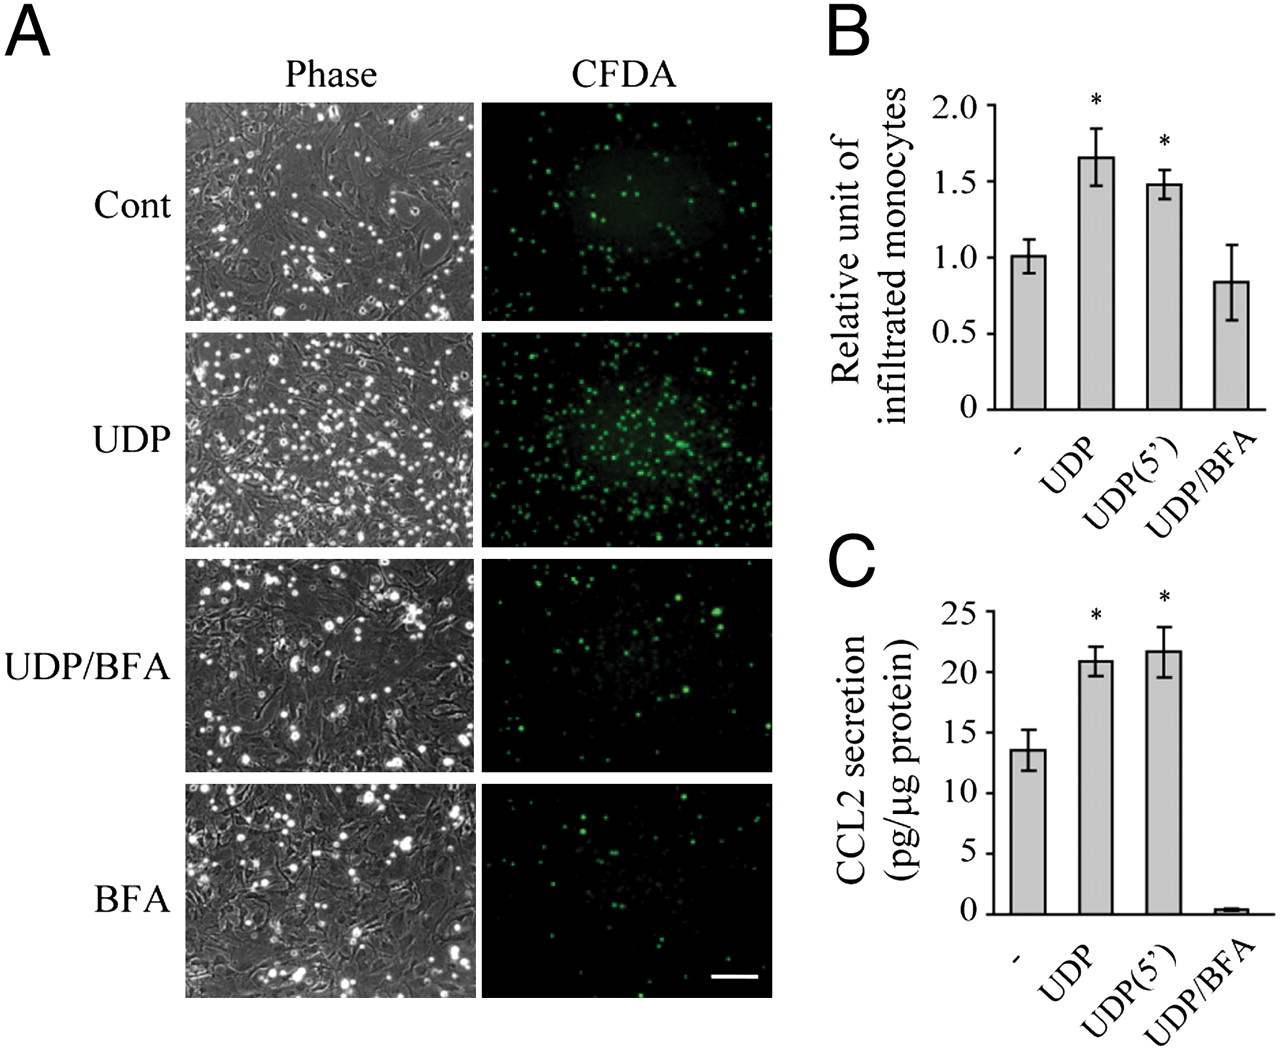 Uridine 5′-Diphosphate Induces Chemokine Expression in Microglia and